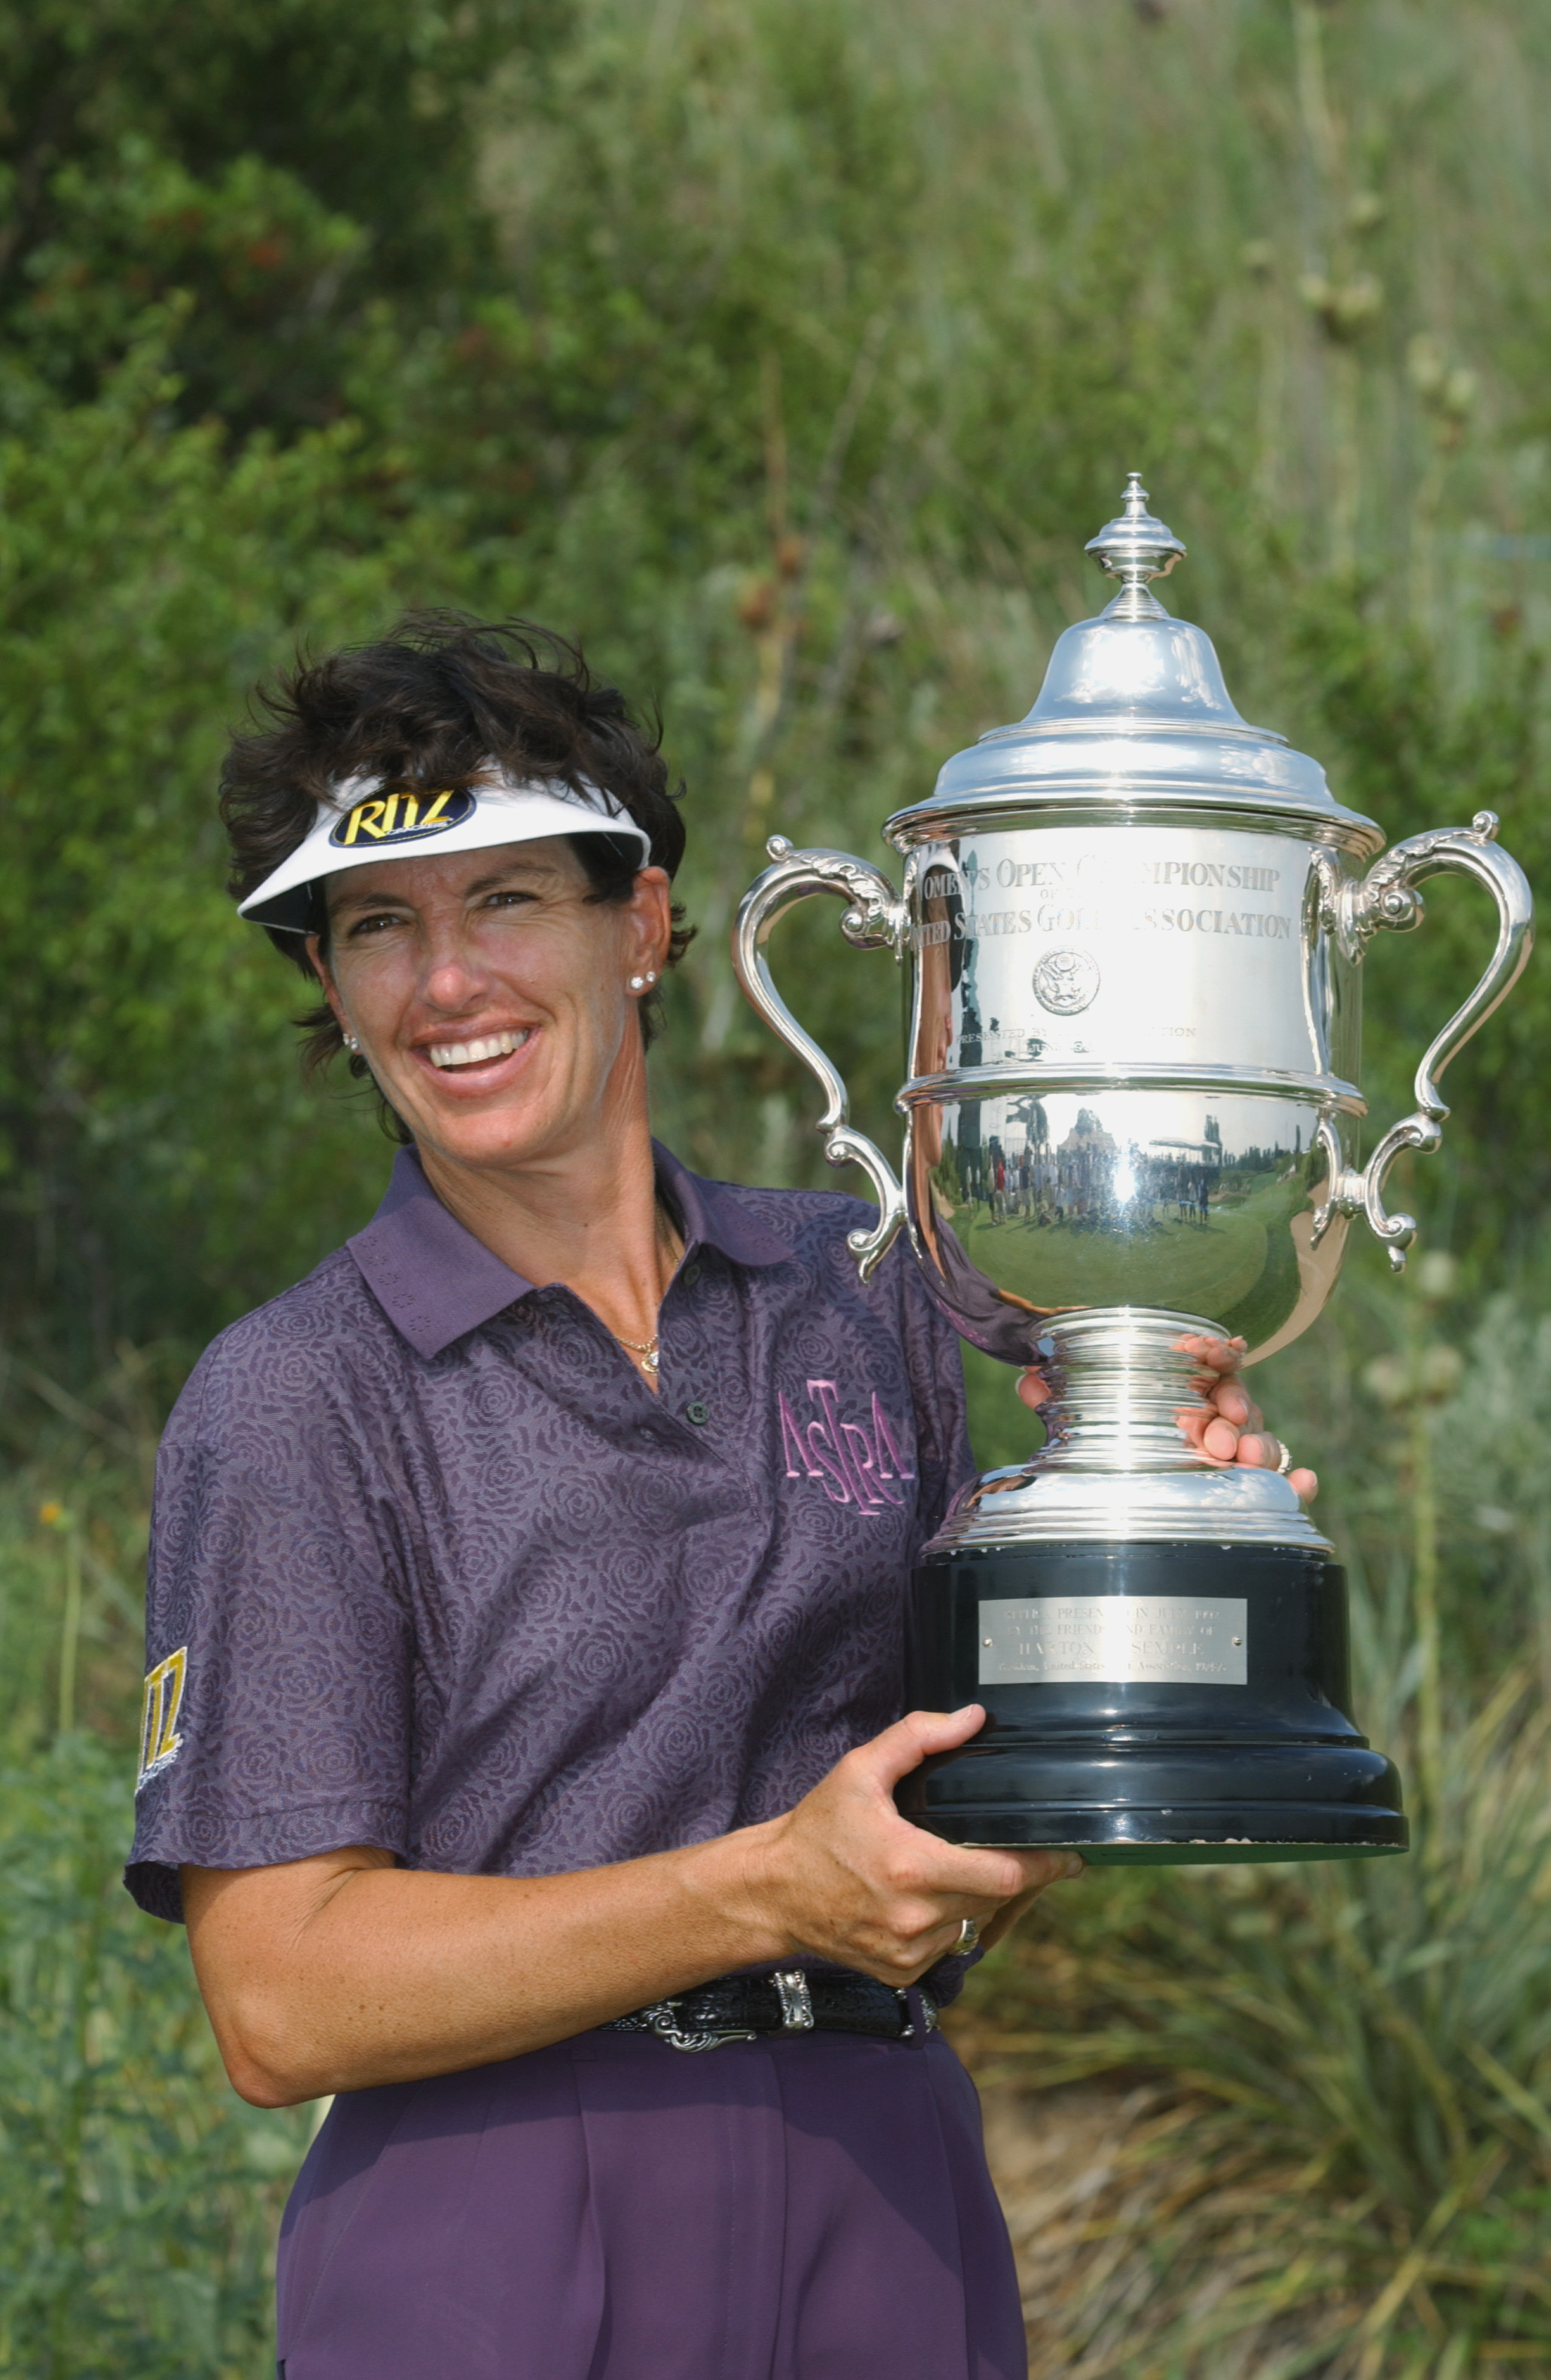 HUTCHISON, KS. - JULY 7:     Juli Inkster of USA poses with trophy after her victory during the final round of the U.S. Women's Open on July 7, 2002 at Prairie Dunes Country Club in Hutchison, Kansas.  (Photo By Harry How/Getty Images)